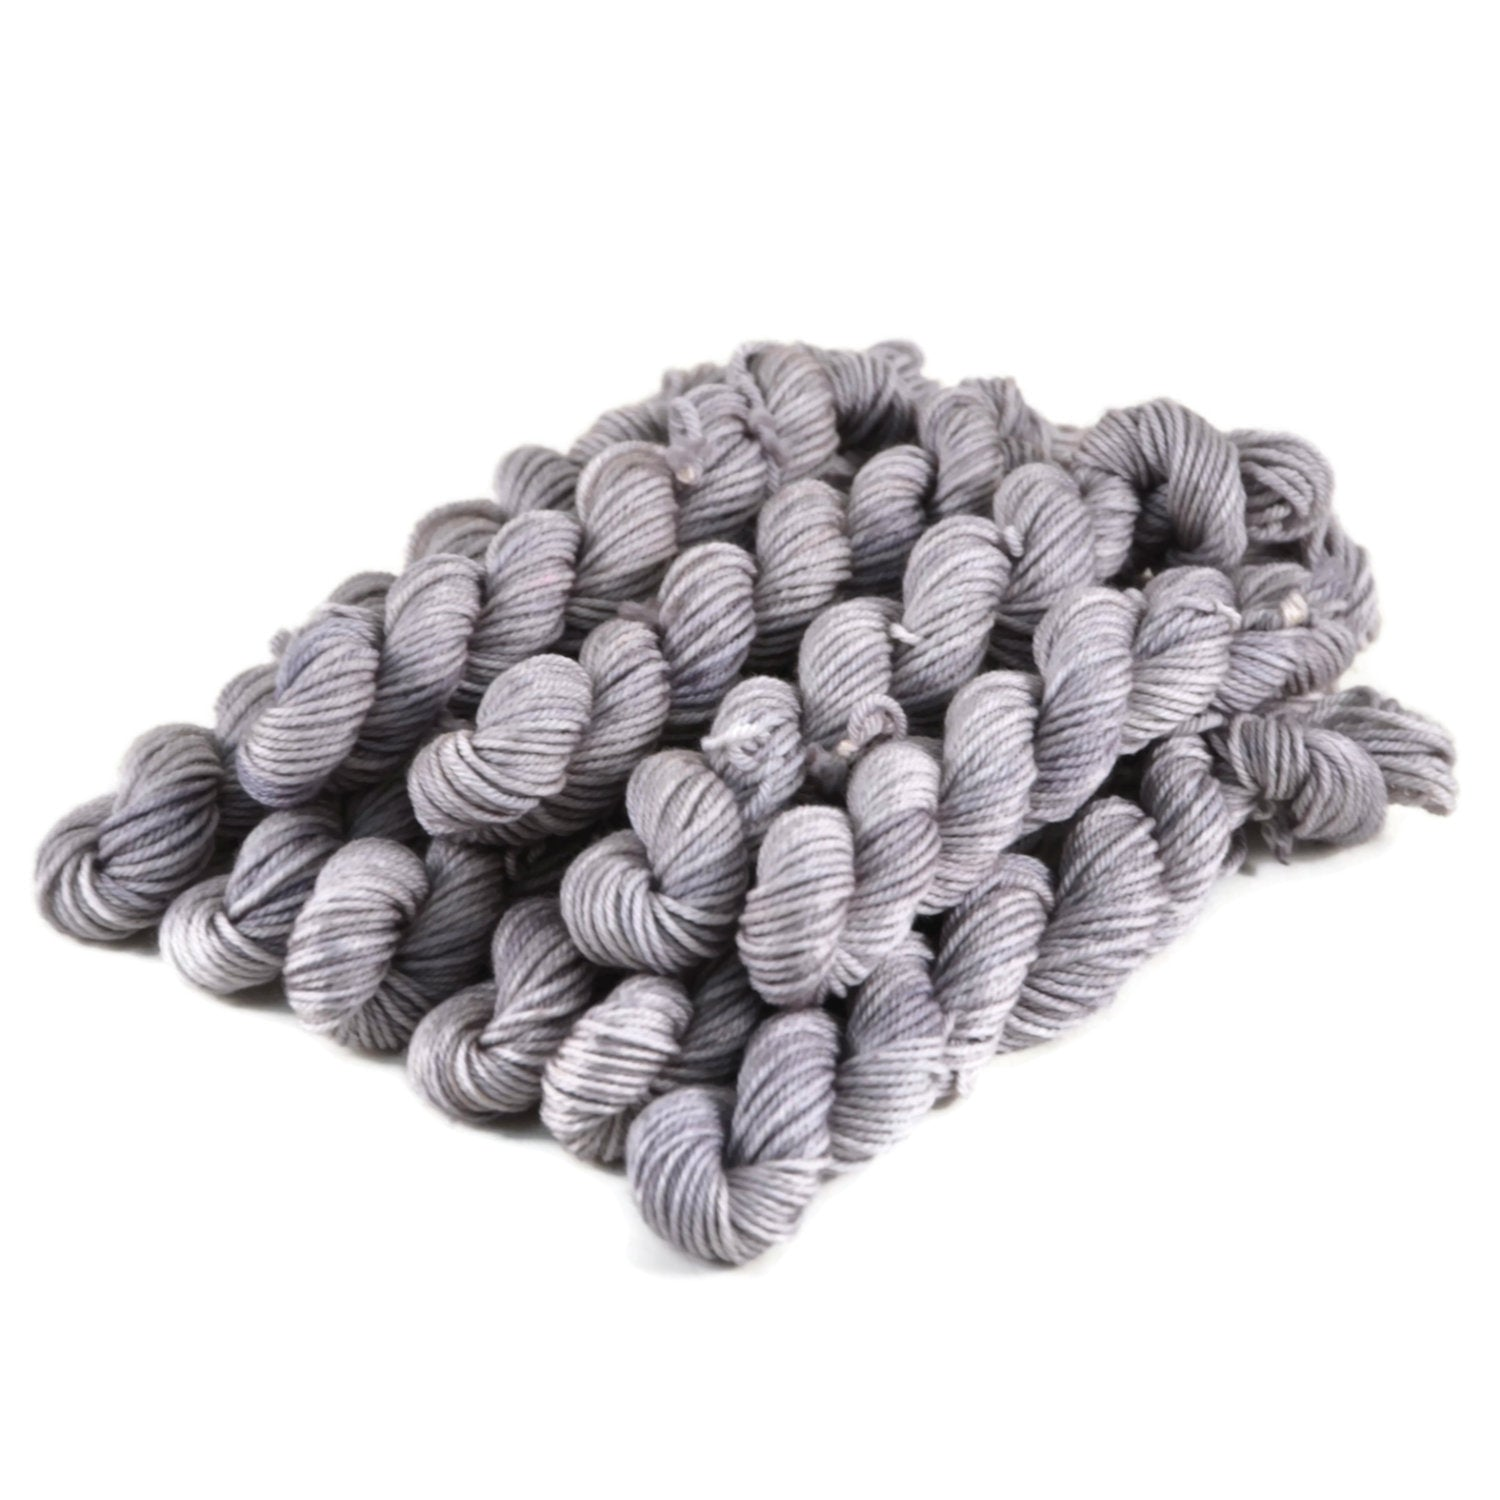 Merlin Merino Worsted Yarn Mini Skeins - Dove